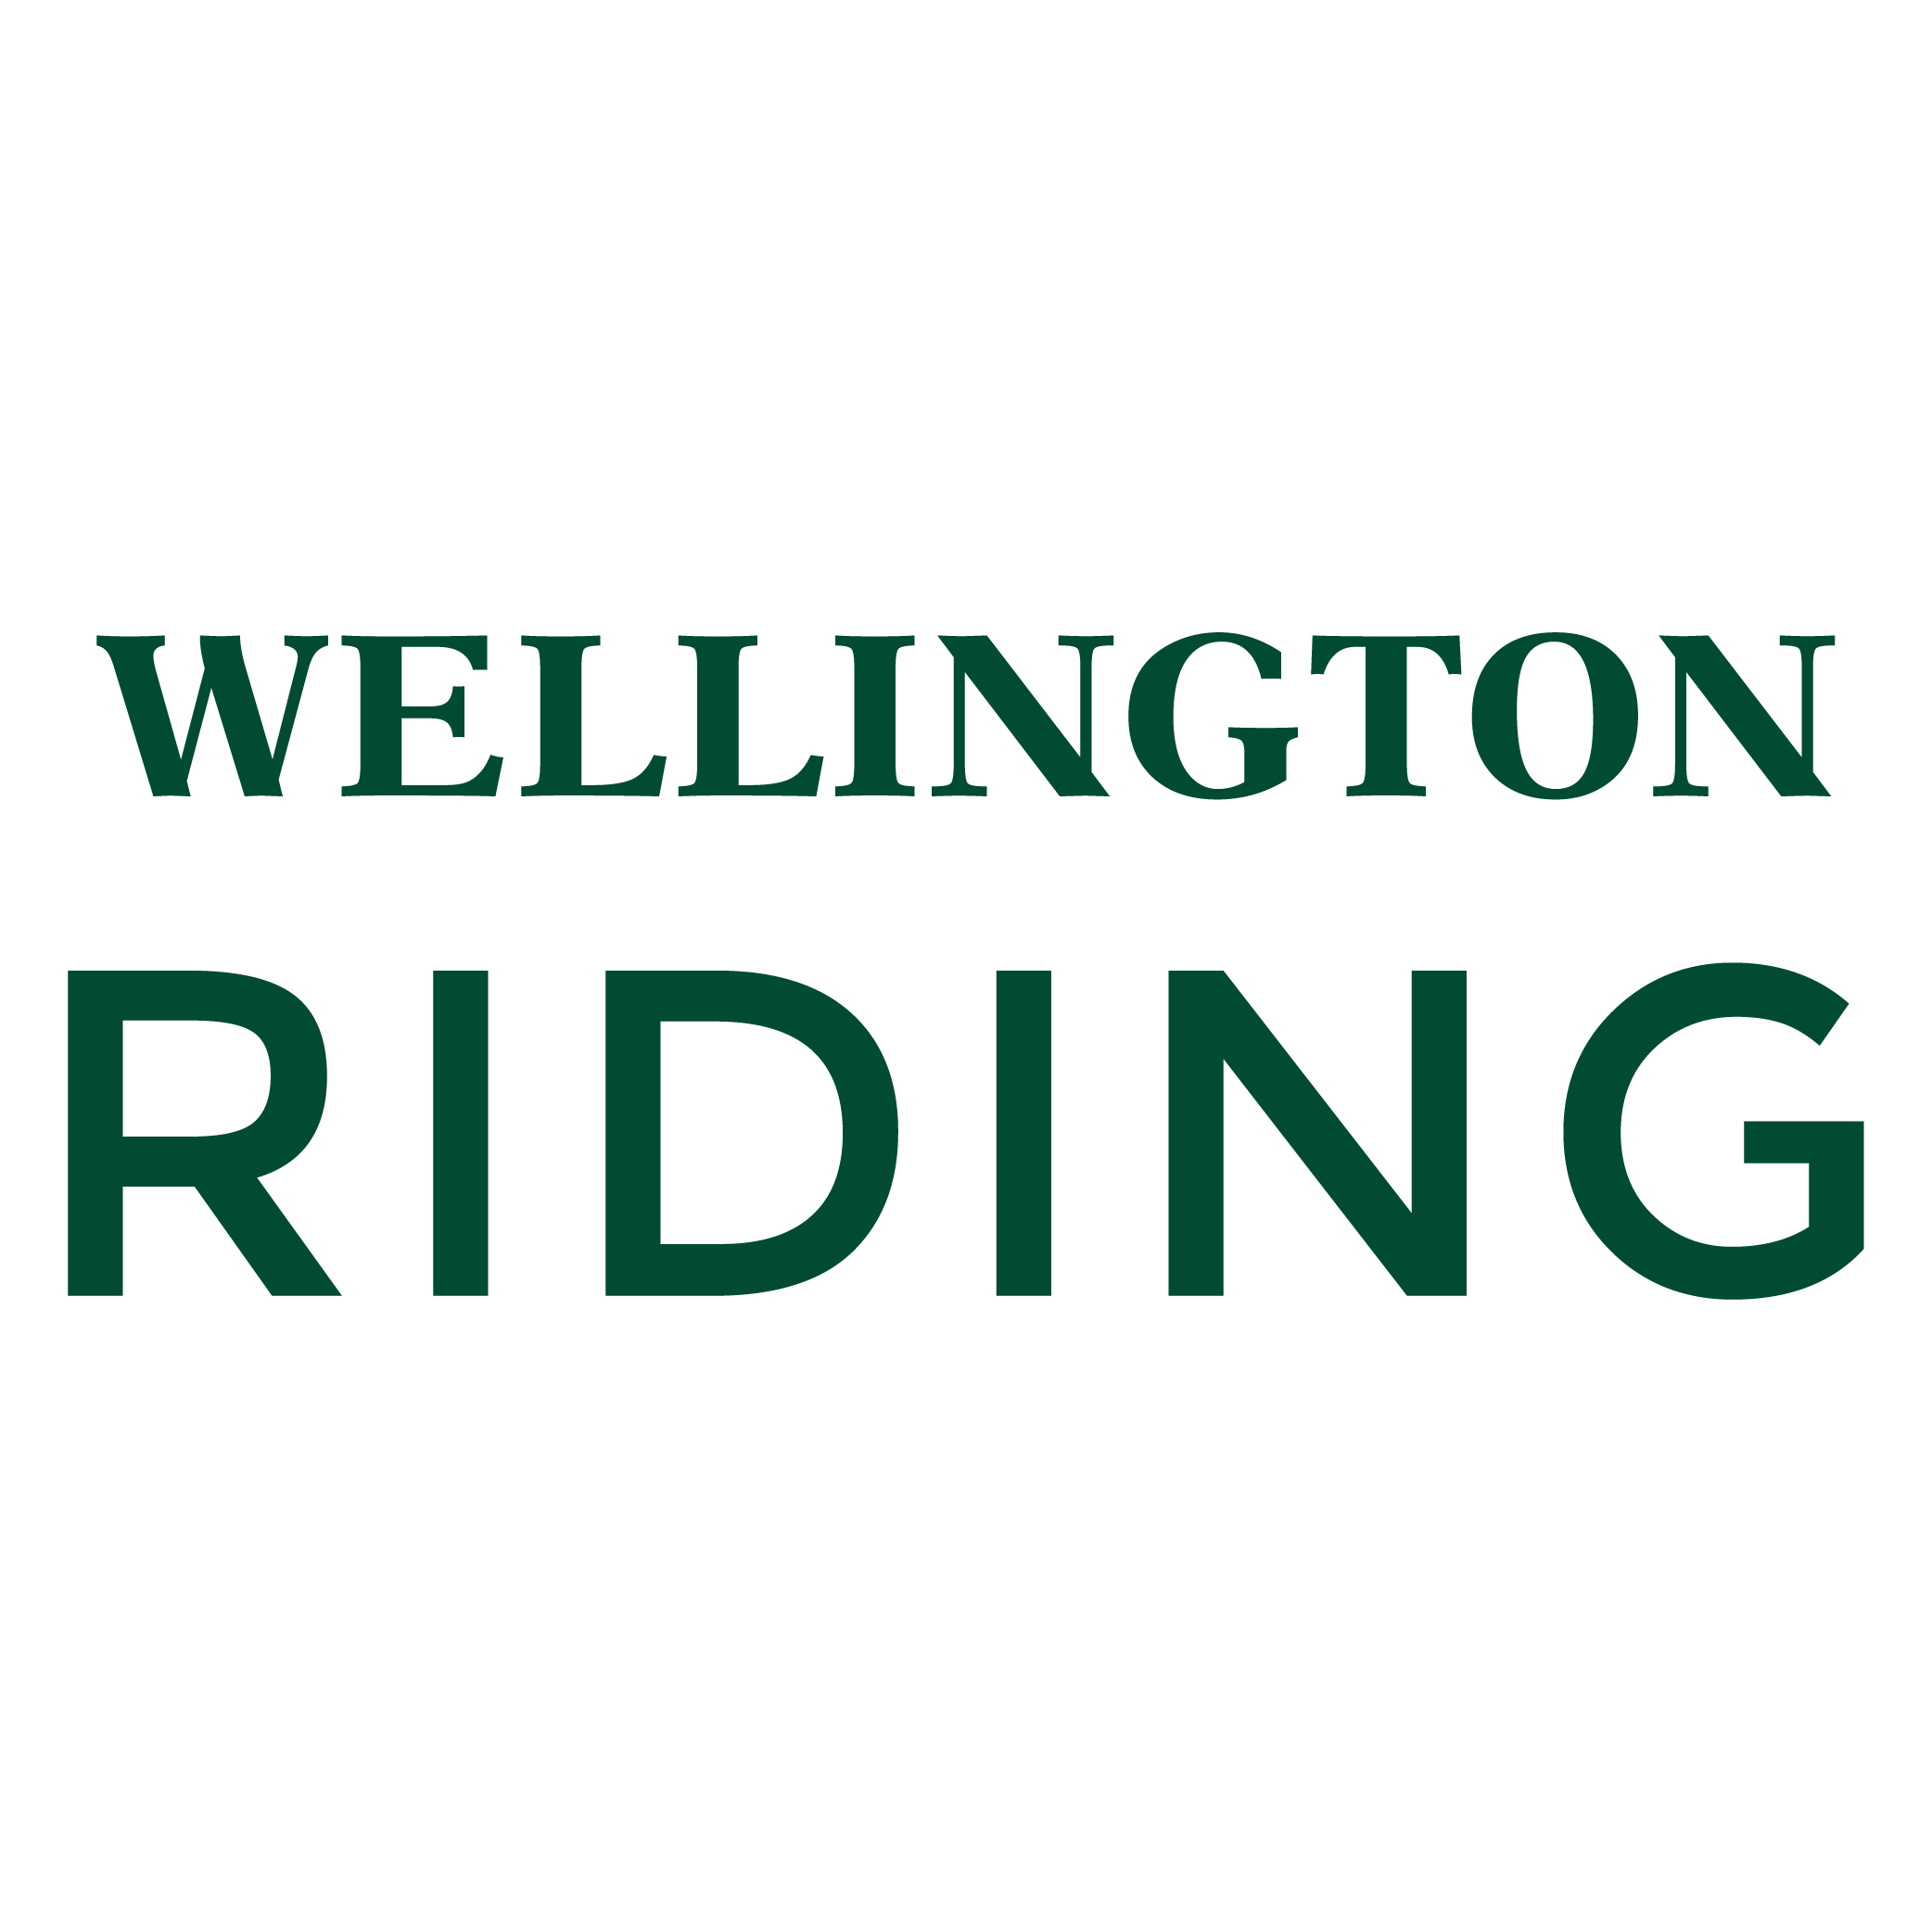 This is an image showing Wellington Ridings logo